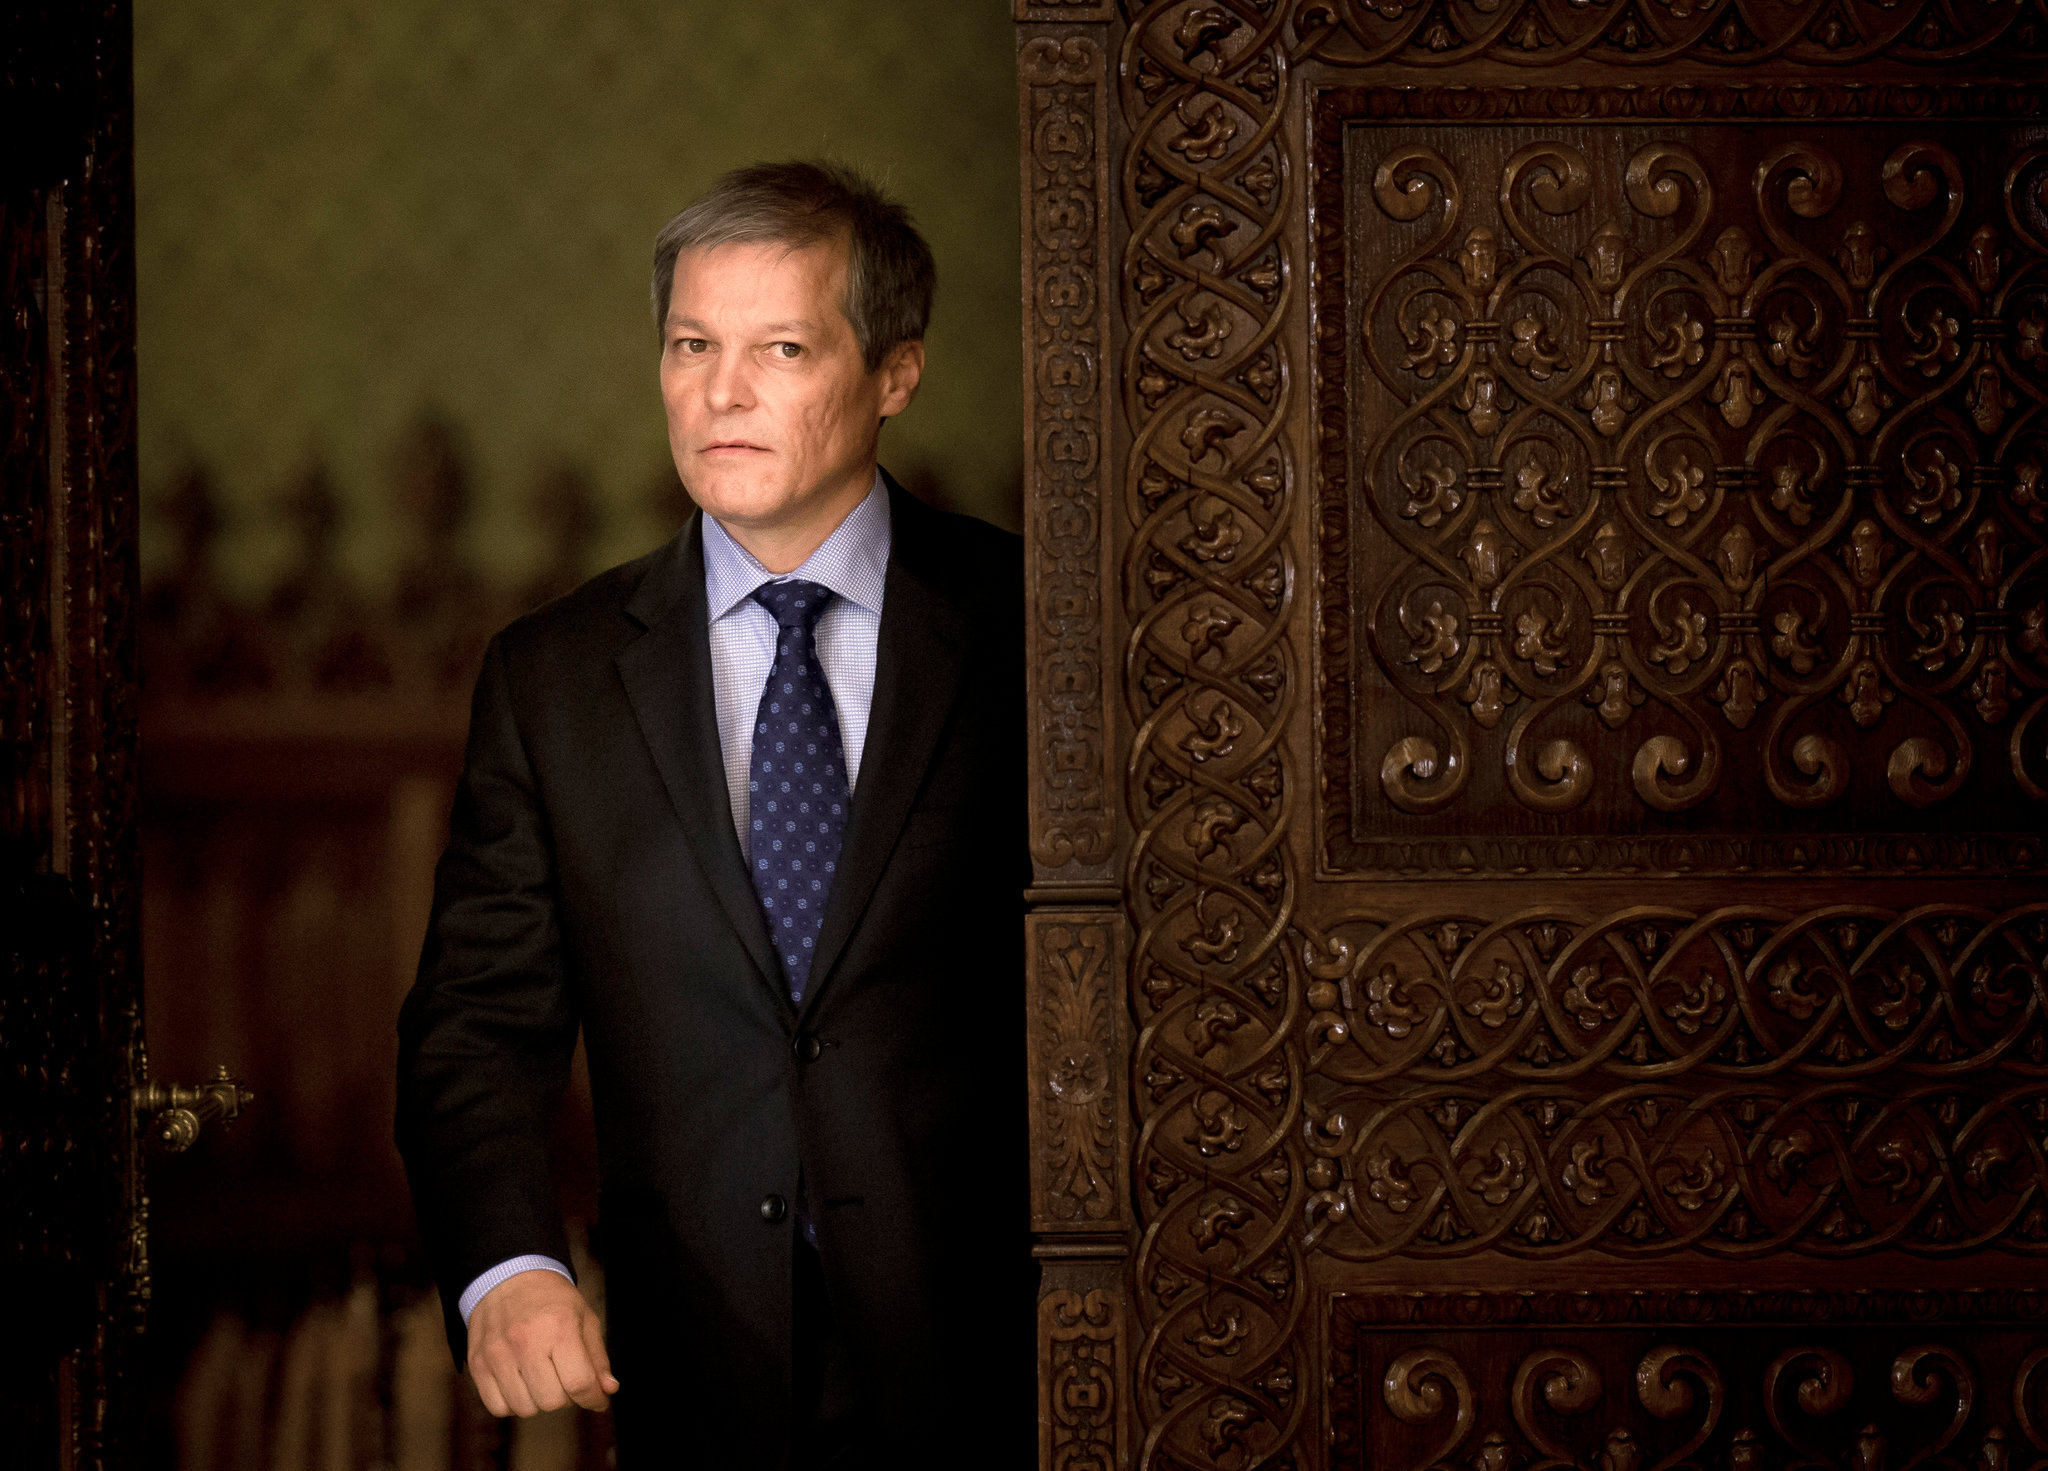 Romania's would-be prime minister, Dacian Ciolos. Click for source